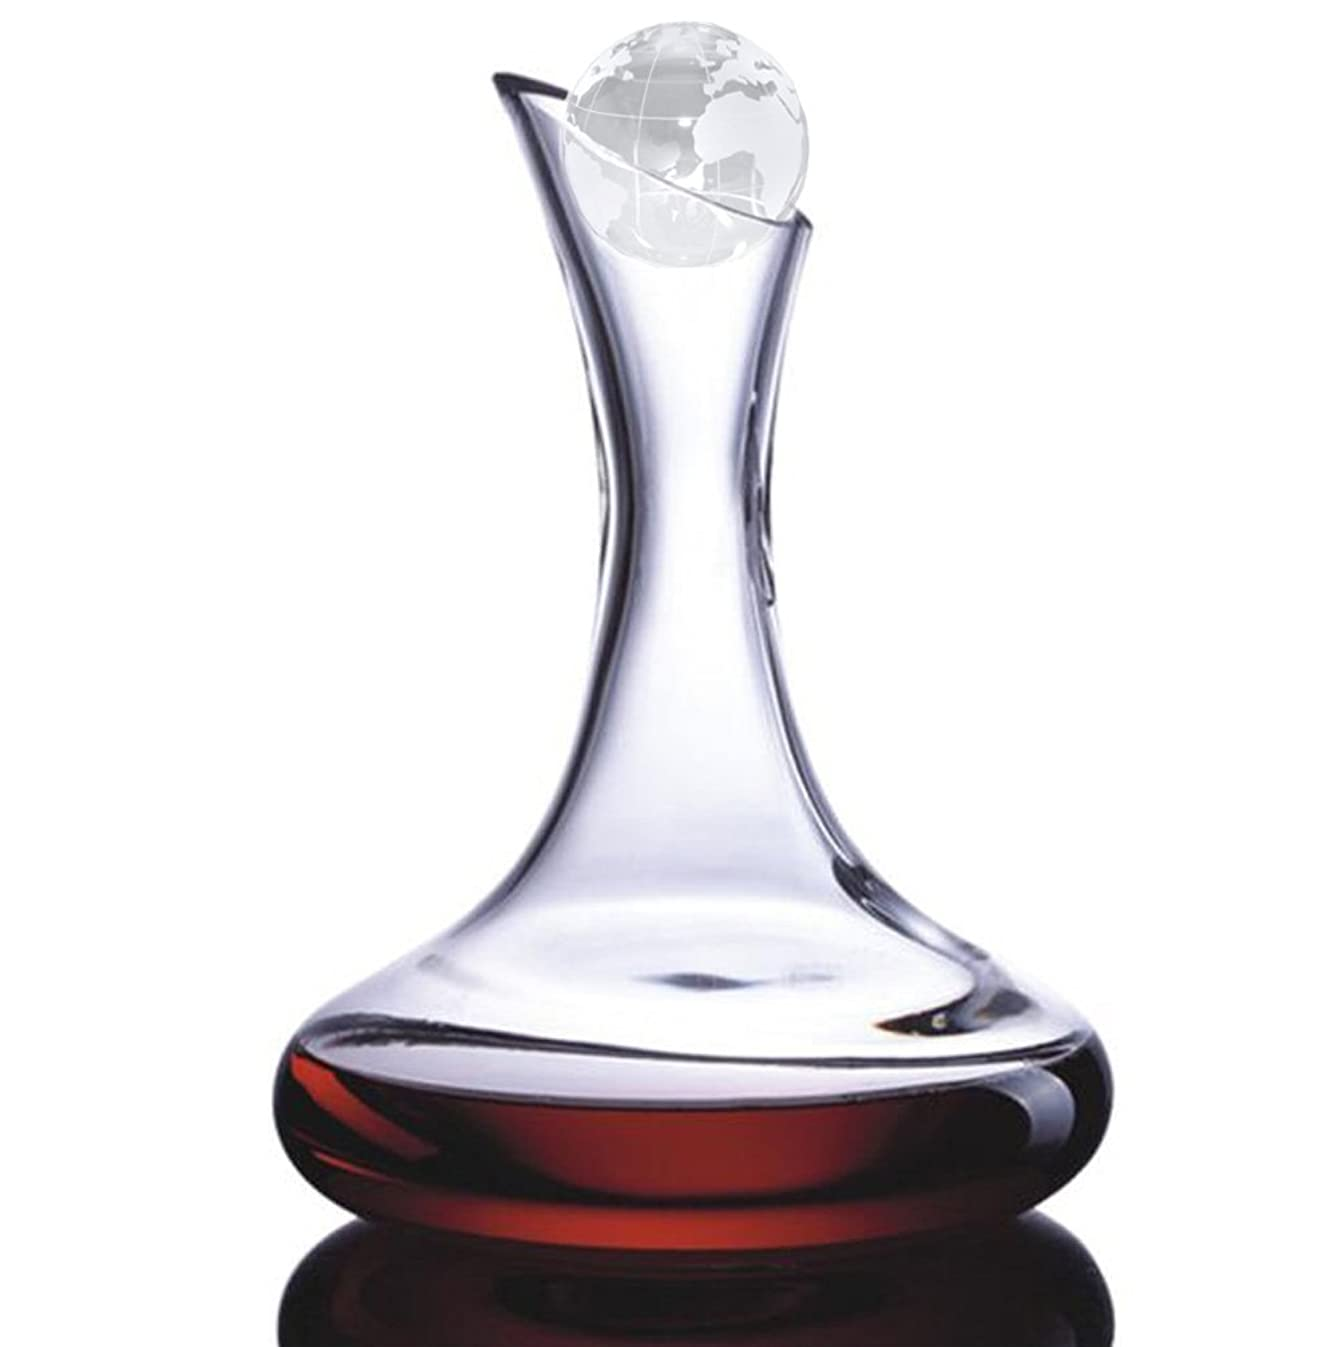 Amlong Crystal Lead Free Crystal Wine Decanter, Red Wine Carafe, Wine Gift, Wine Accessories (Large with Globe Stopper)